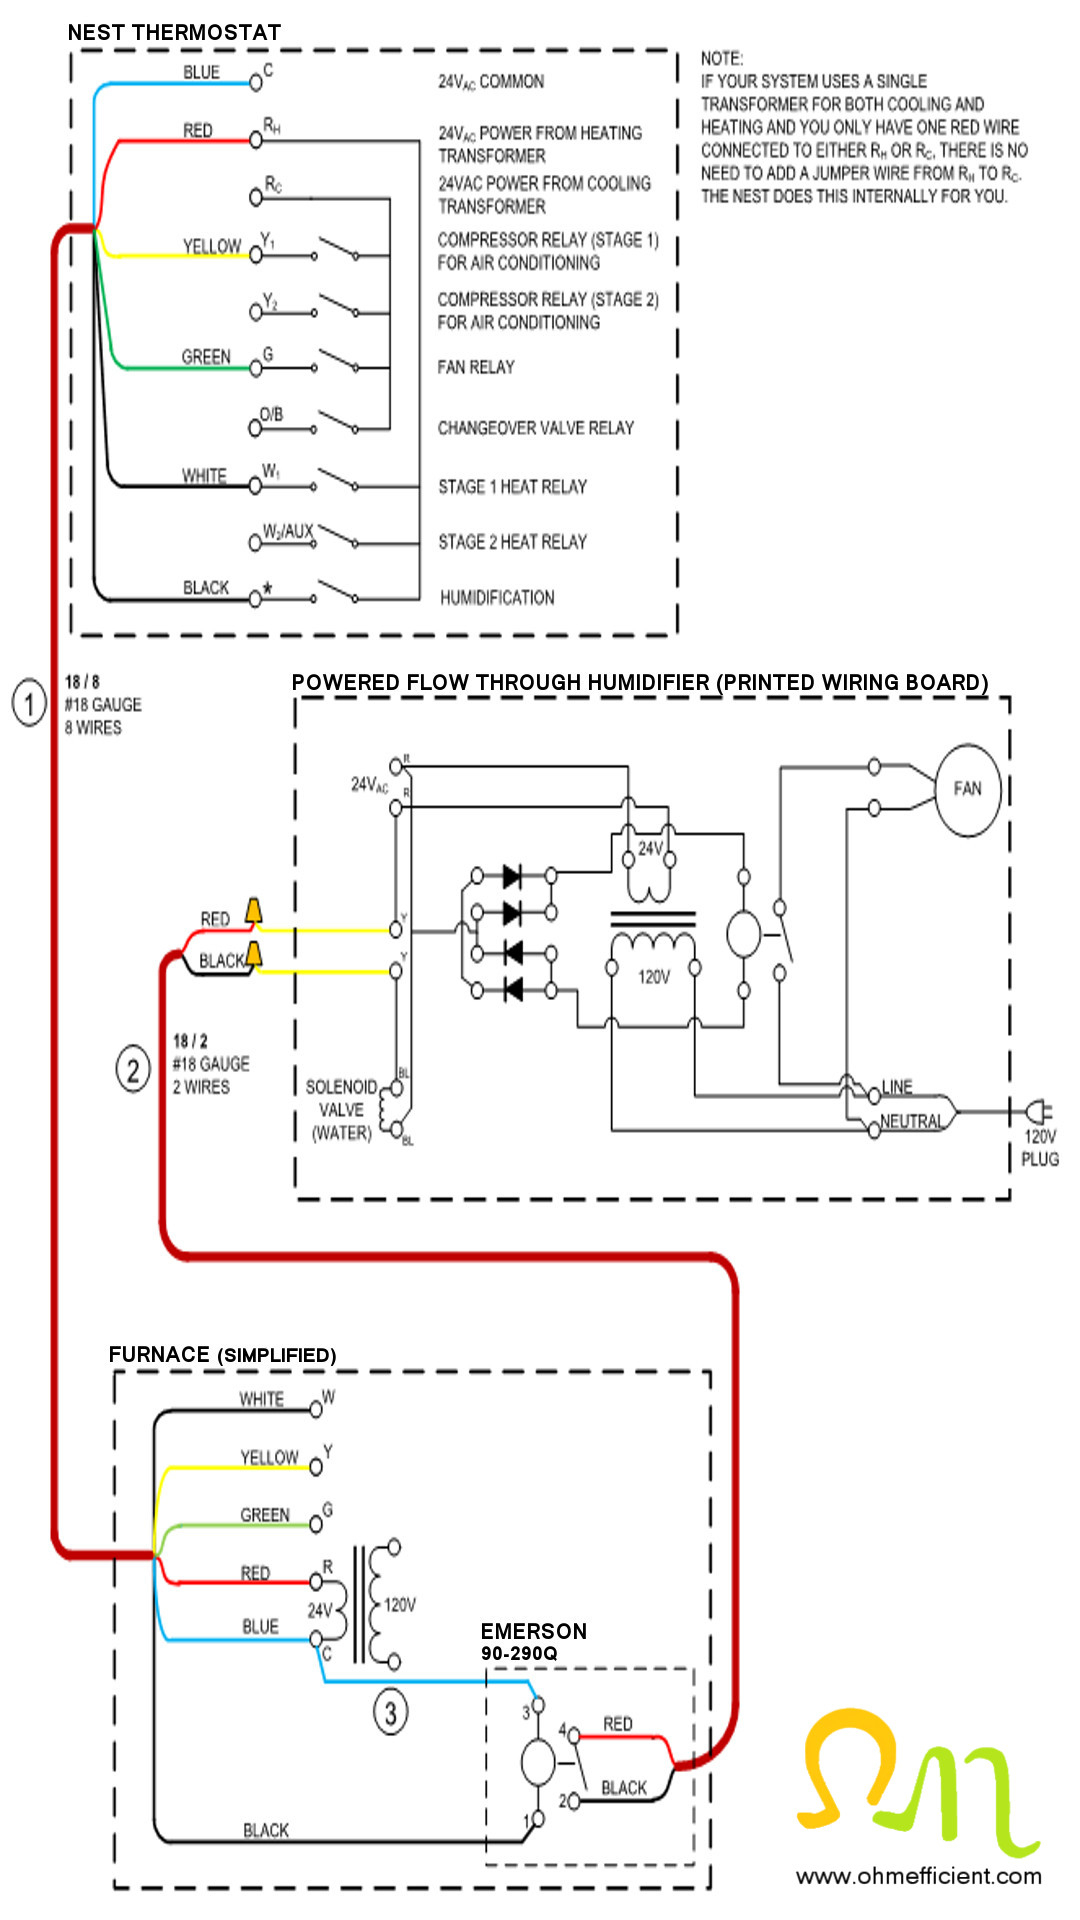 Outstanding Wiring Diagram Nest Thermostat Nest Wiring Diagram Wiring Cloud Pendufoxcilixyz